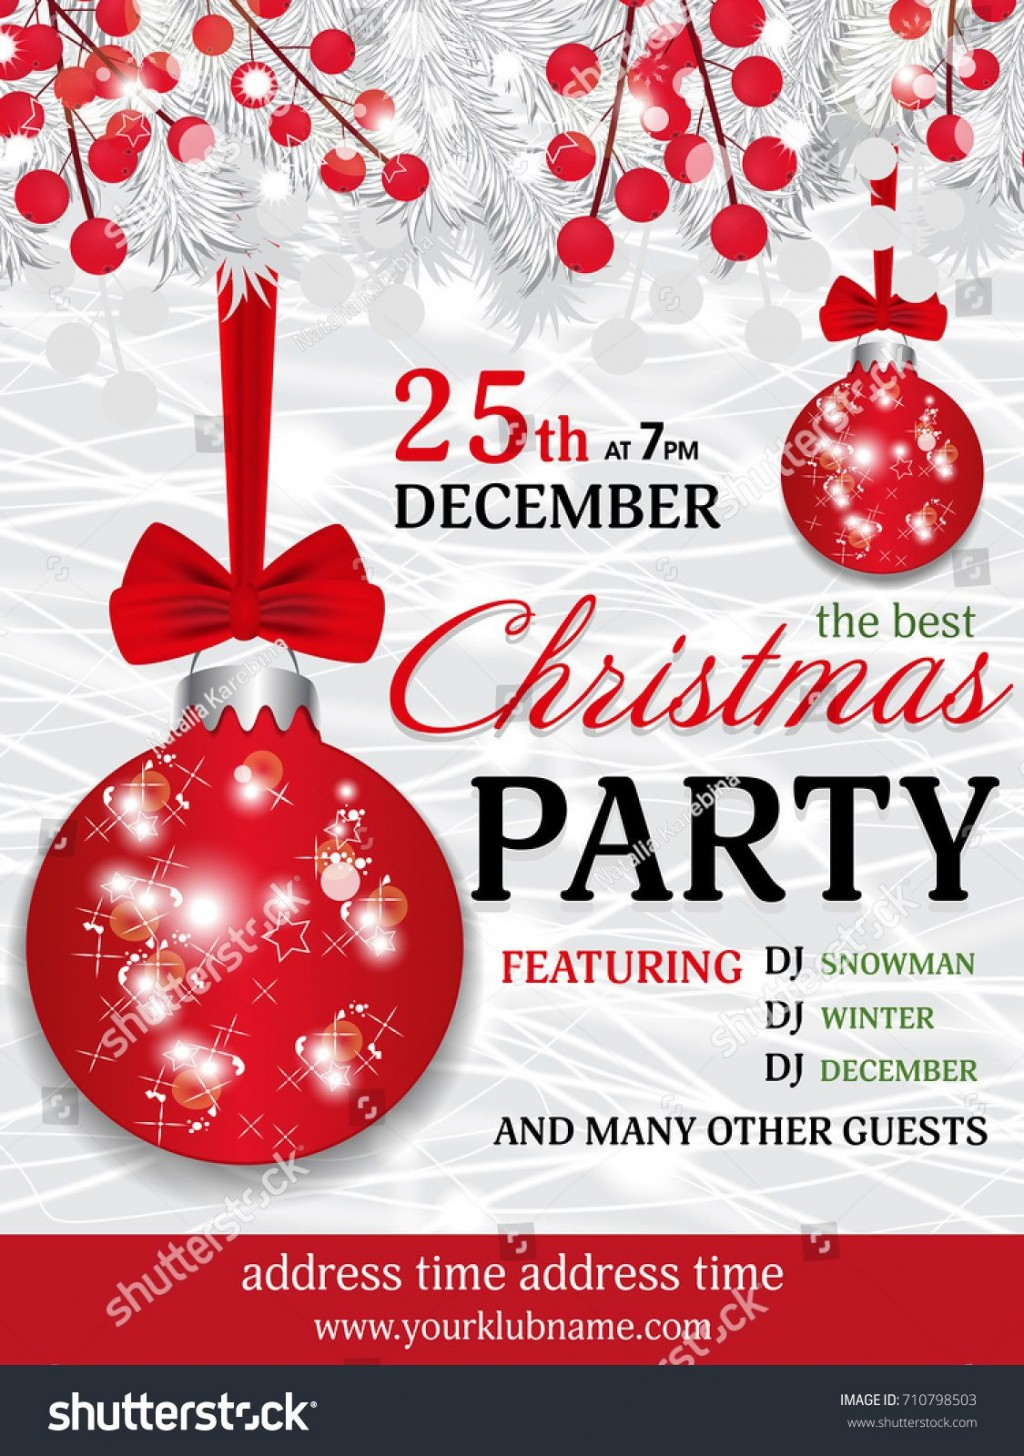 009 Wondrou Christma Party Invitation Template Design  Funny Free Download Word CardLarge